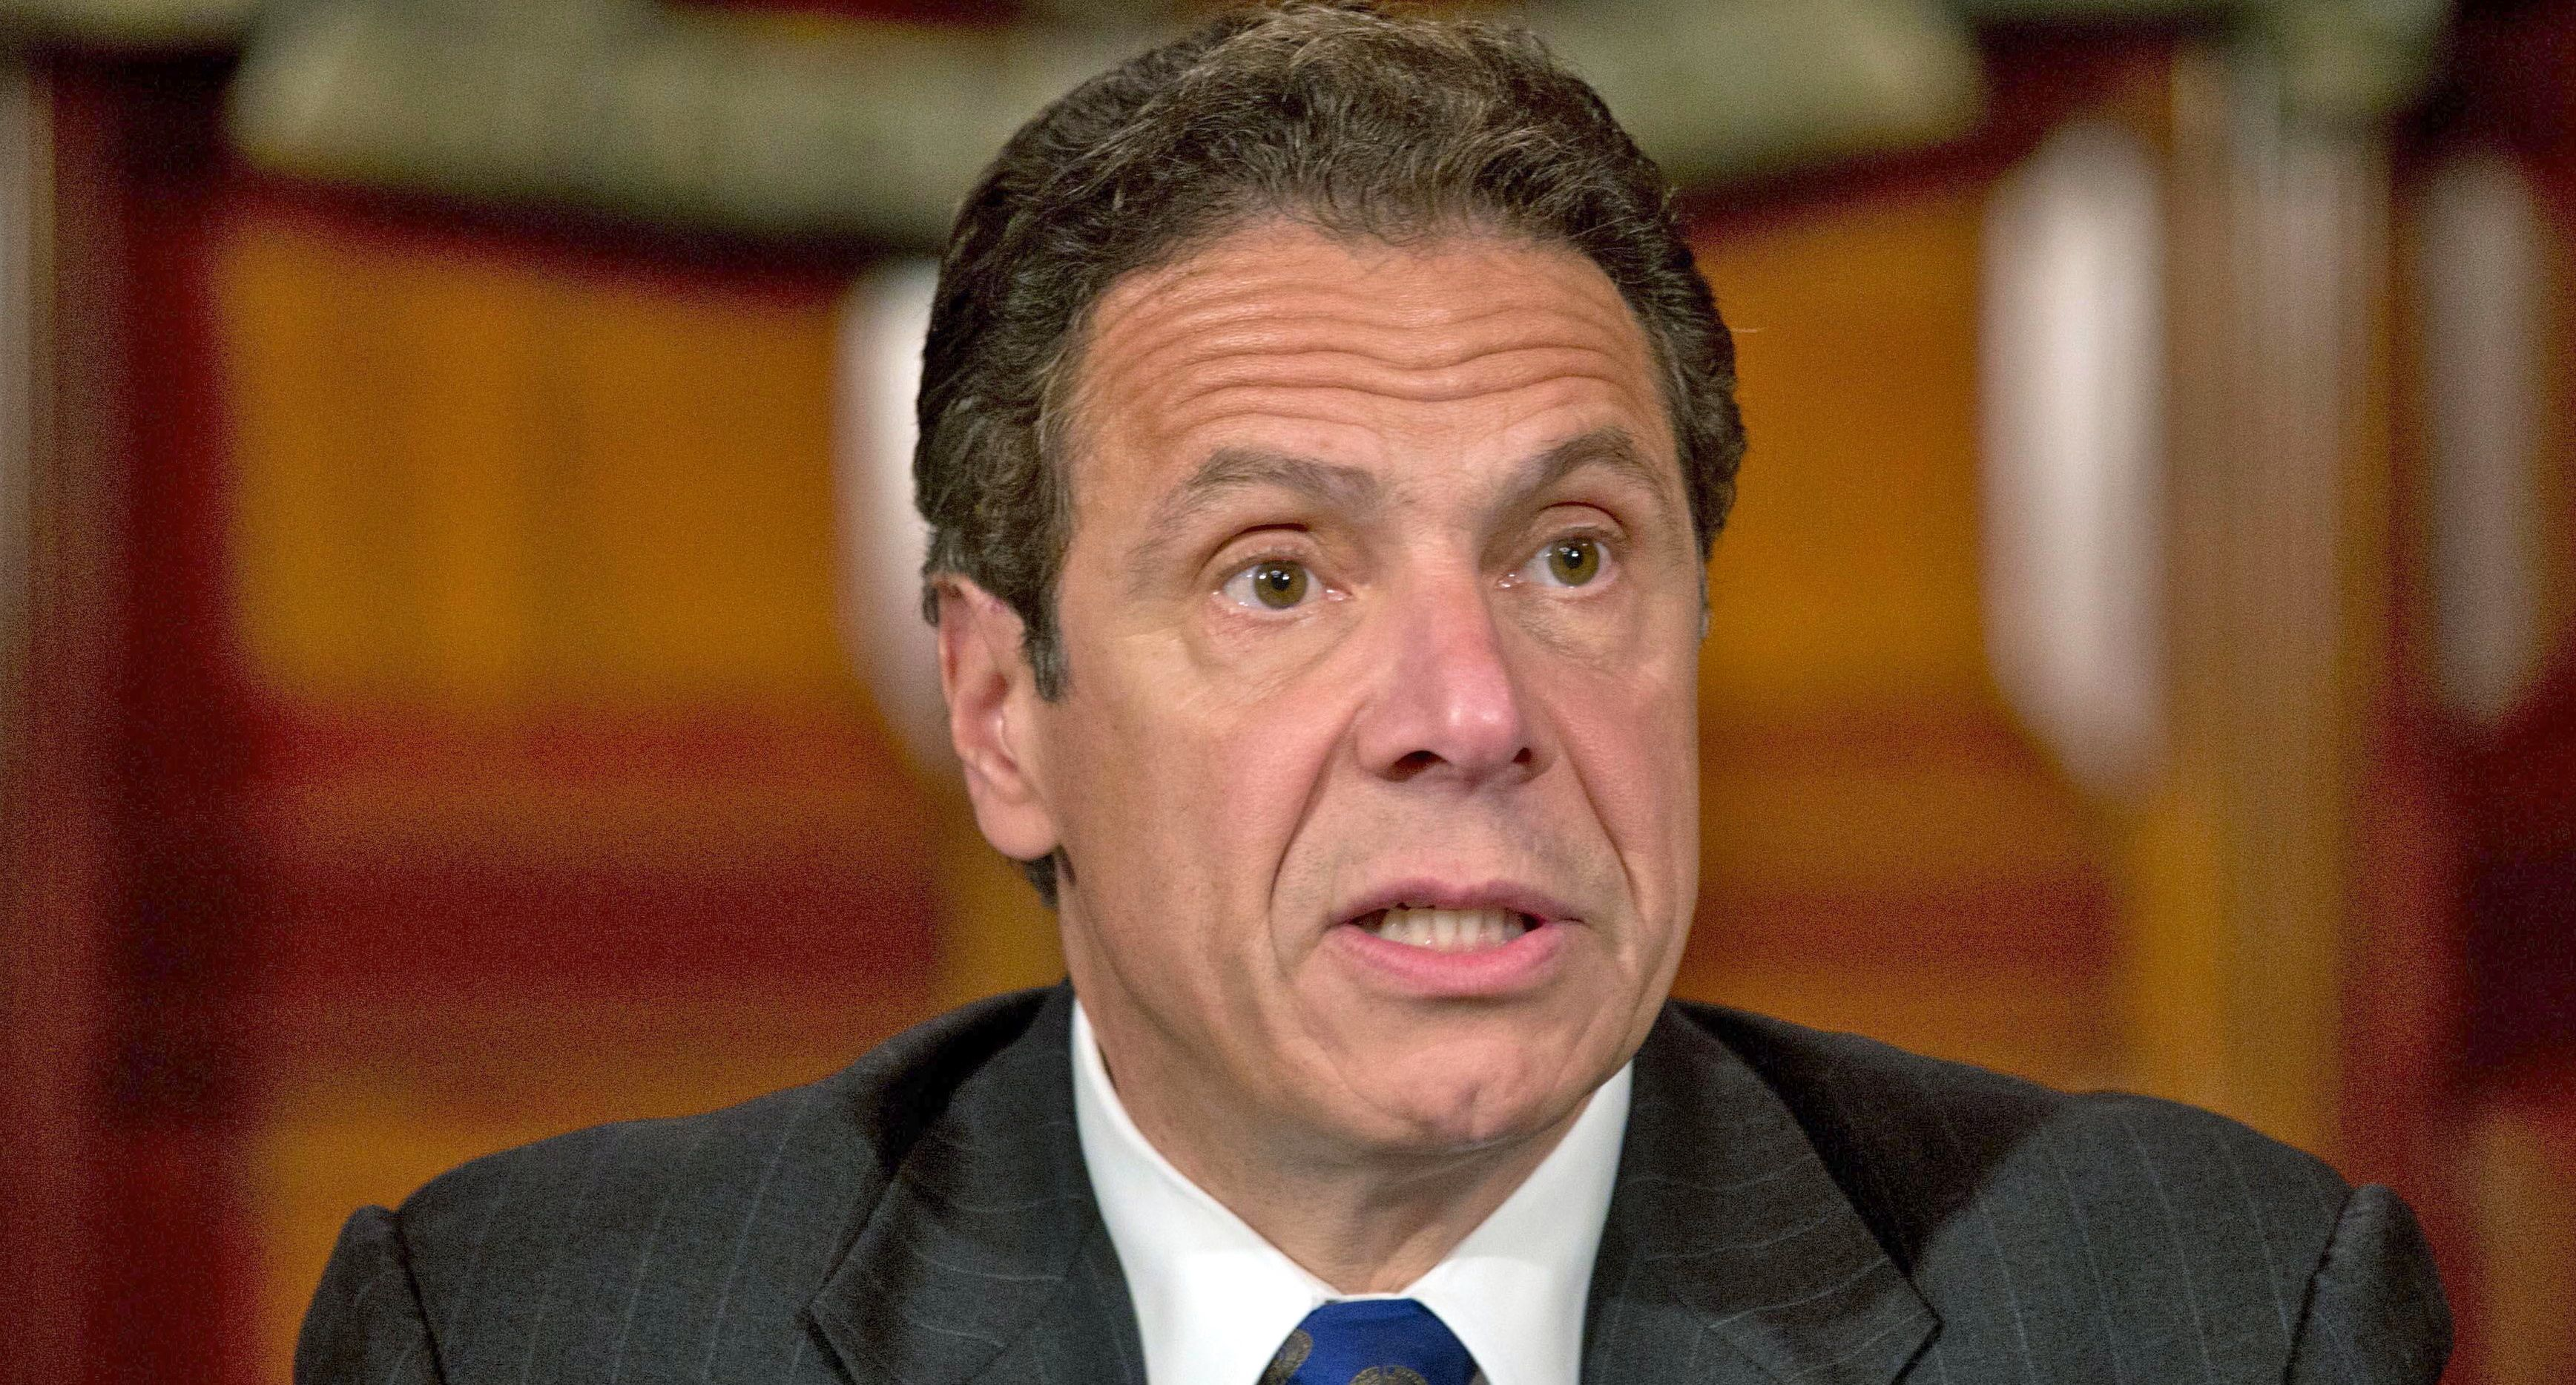 Dem congresswoman says Cuomo 'must resign' after third #MeToo allegation includes shocking photo